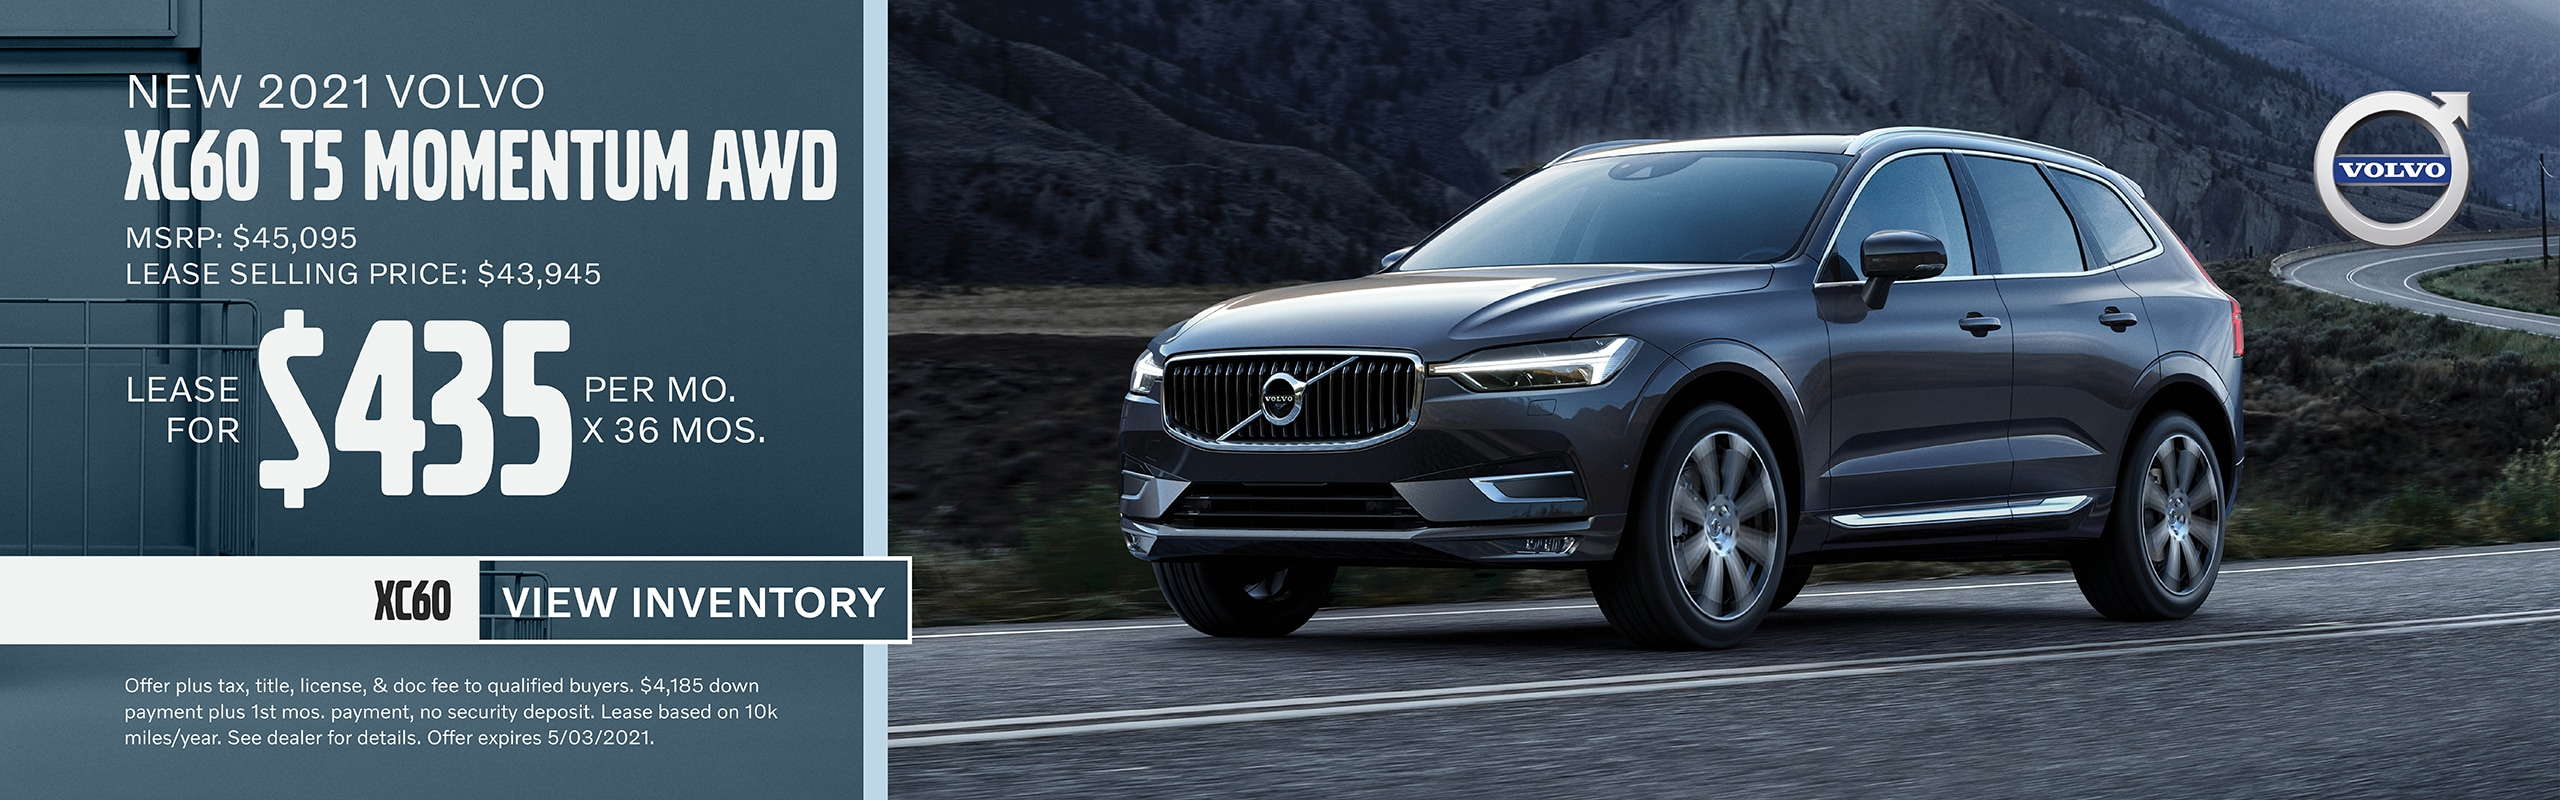 2021 Volvo XC60 Lease Offer | Moline, IL